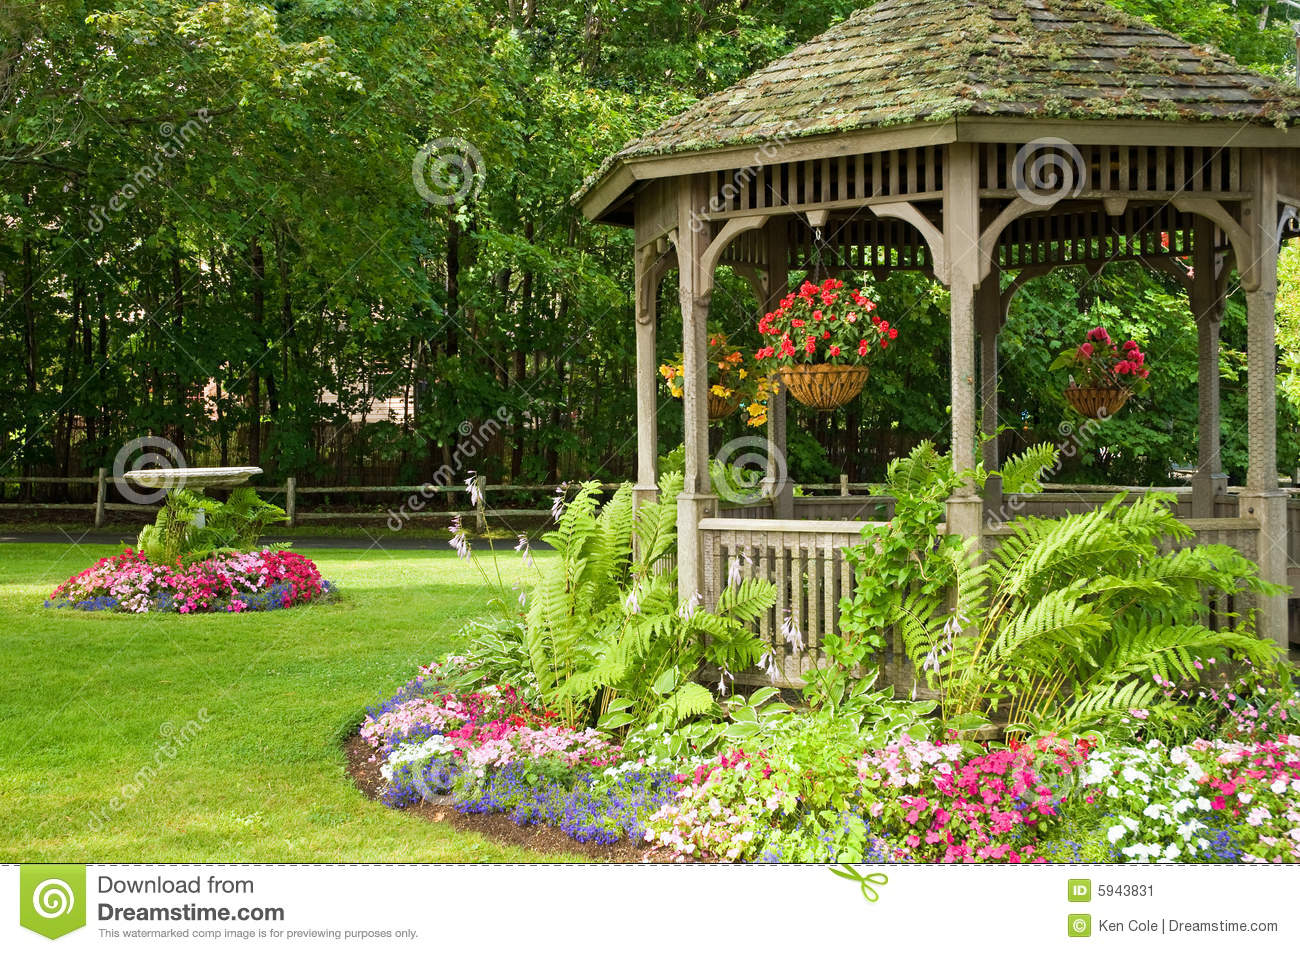 Landscaping gazebo in park